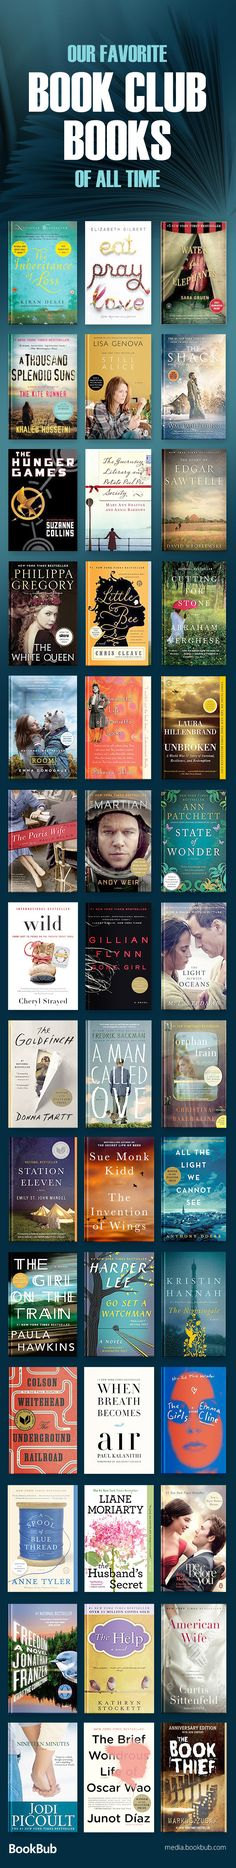 The most popular book club books for women, including funny books, young adult, psychological thrillers, mystery books, and more. Great suggestions for 2017 and 2018. #bookclubbooks #bookclubideas #bookclub